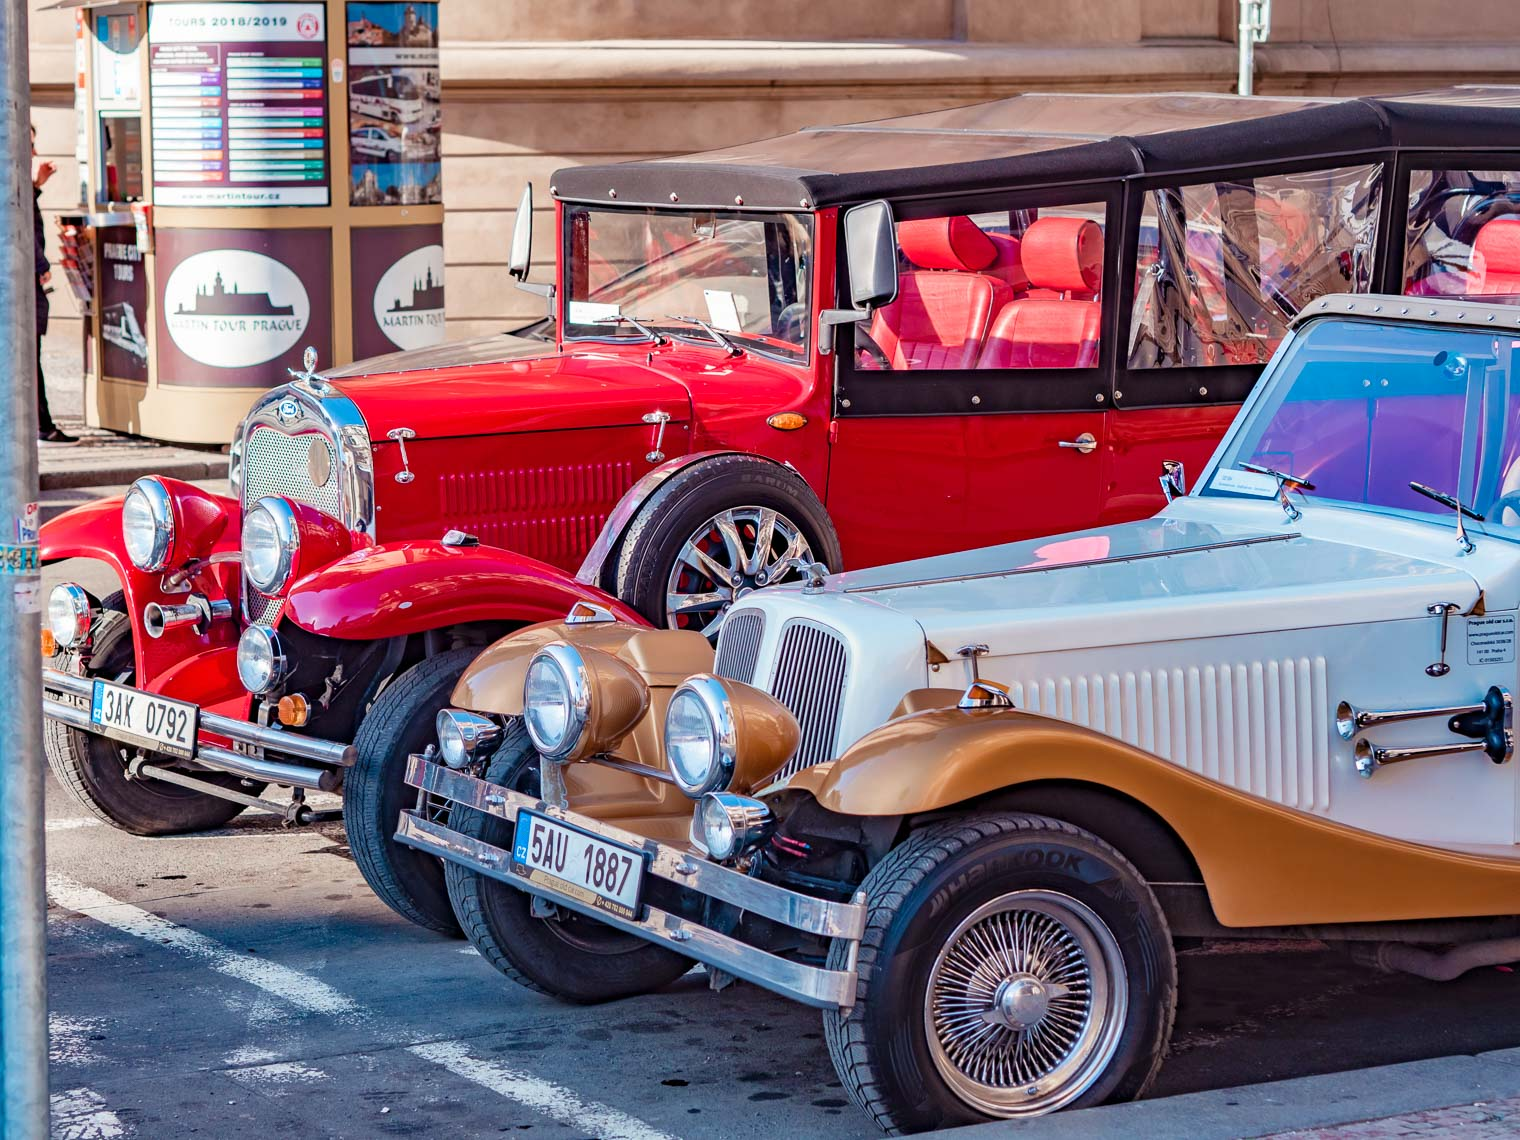 Prague sightseeing in historical cars